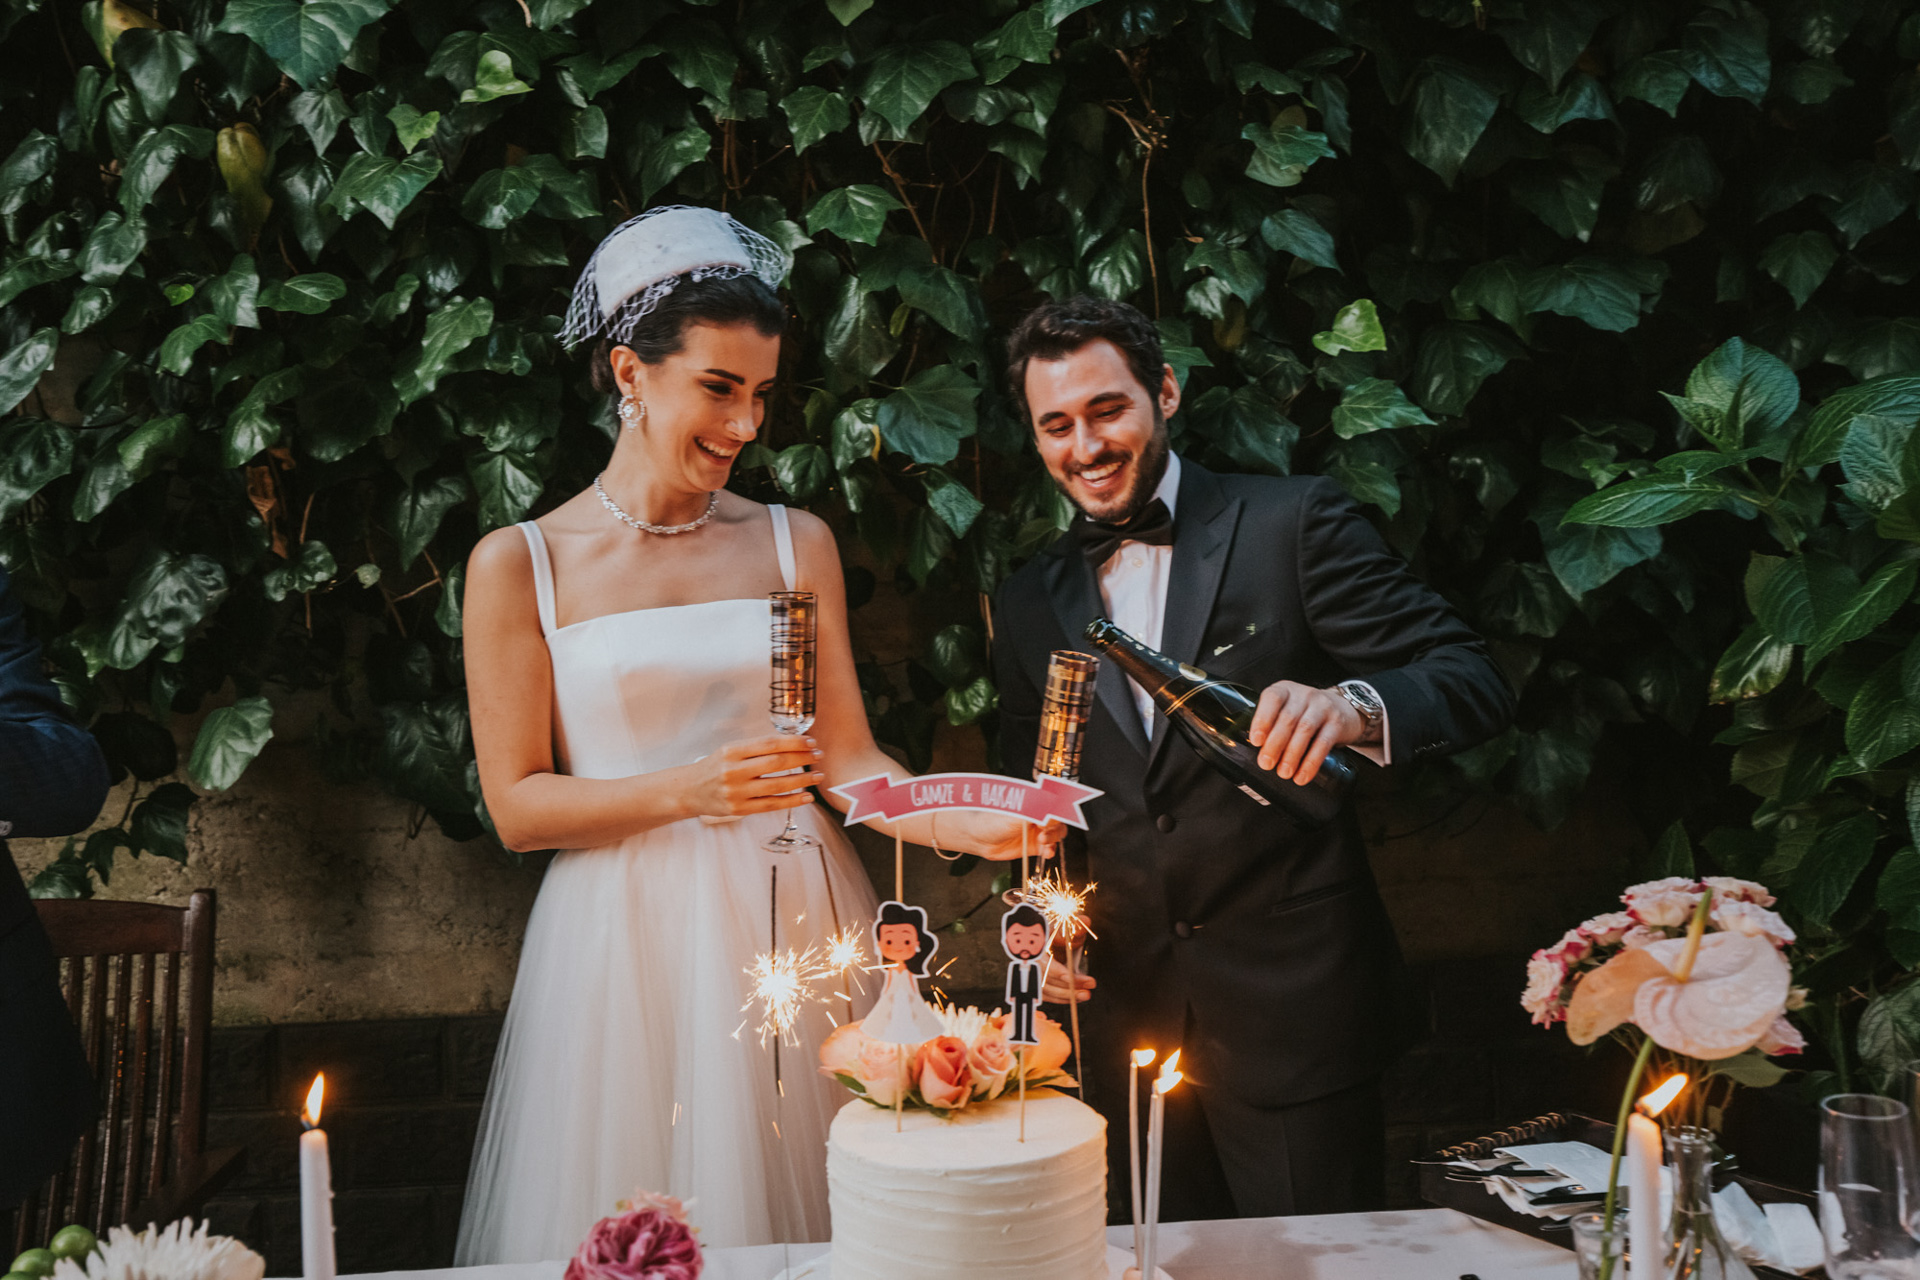 Elopement Photographer in Turkey Istanbul | the cake cutting was emotional because of the guests' speeches